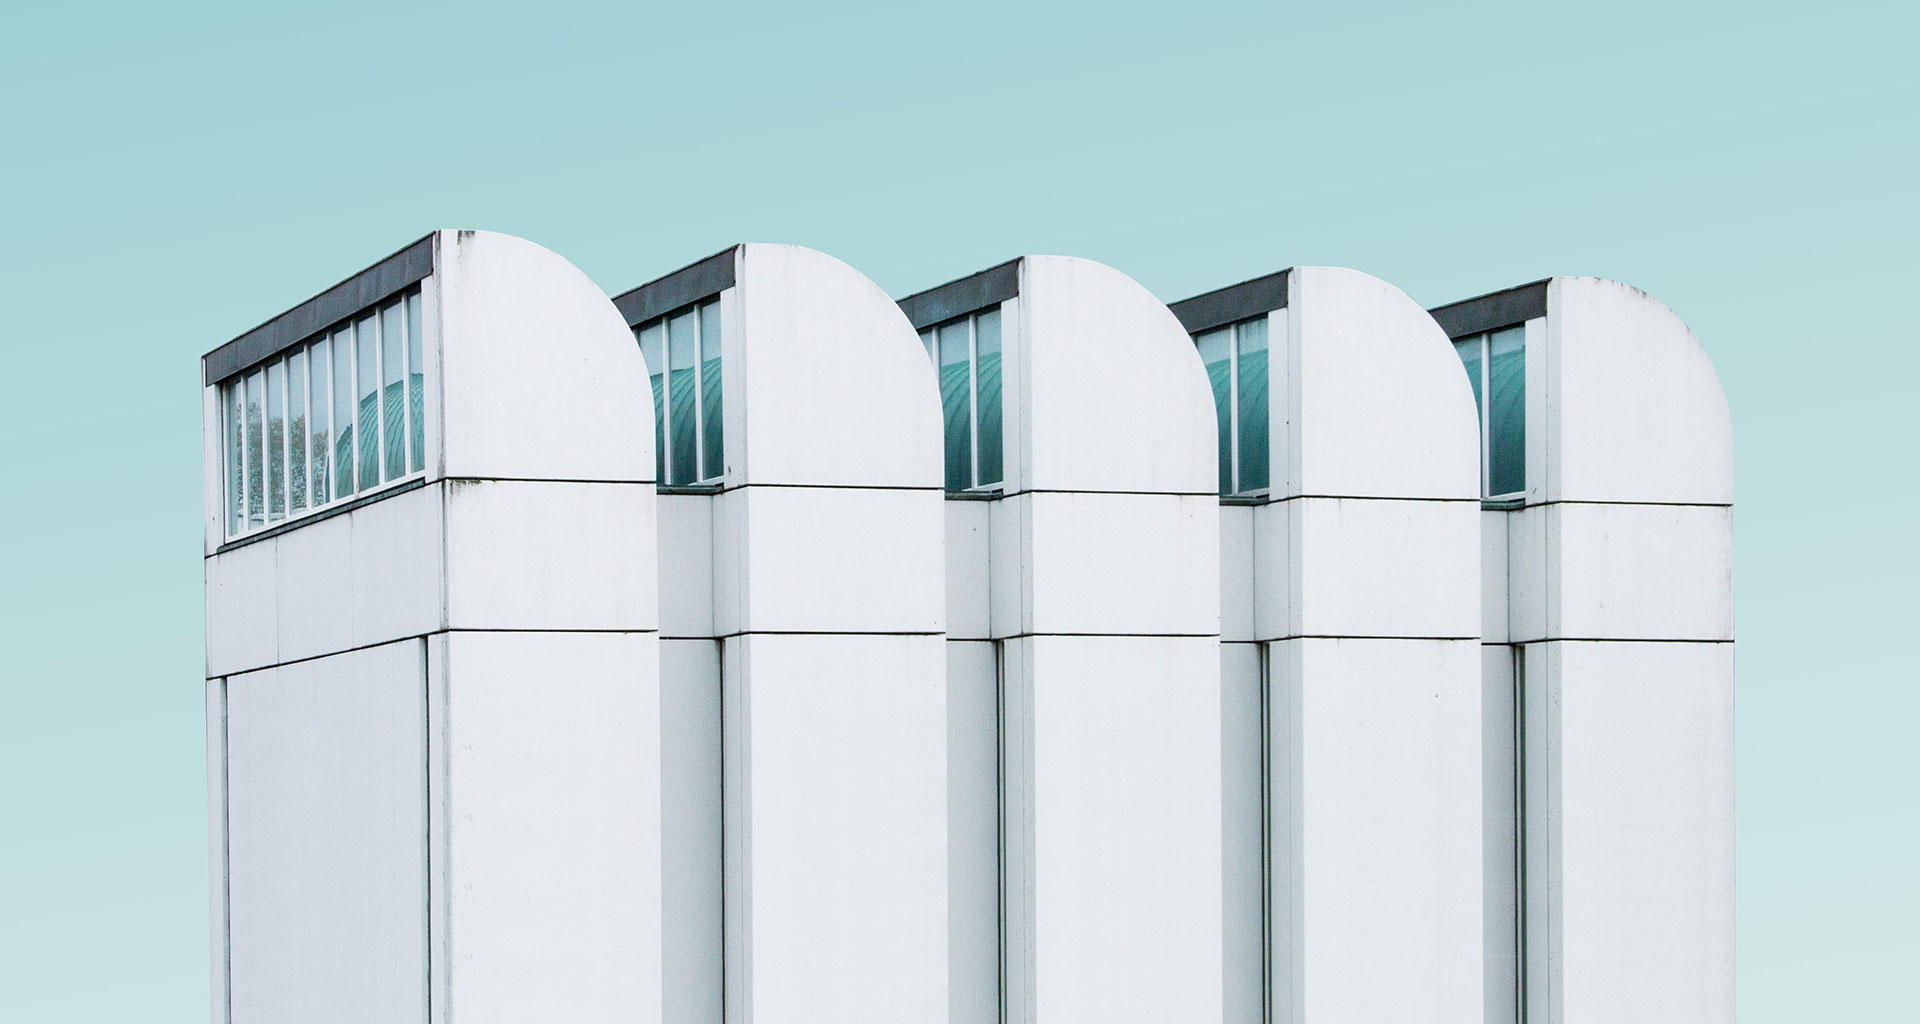 Bauhaus on Unsplash